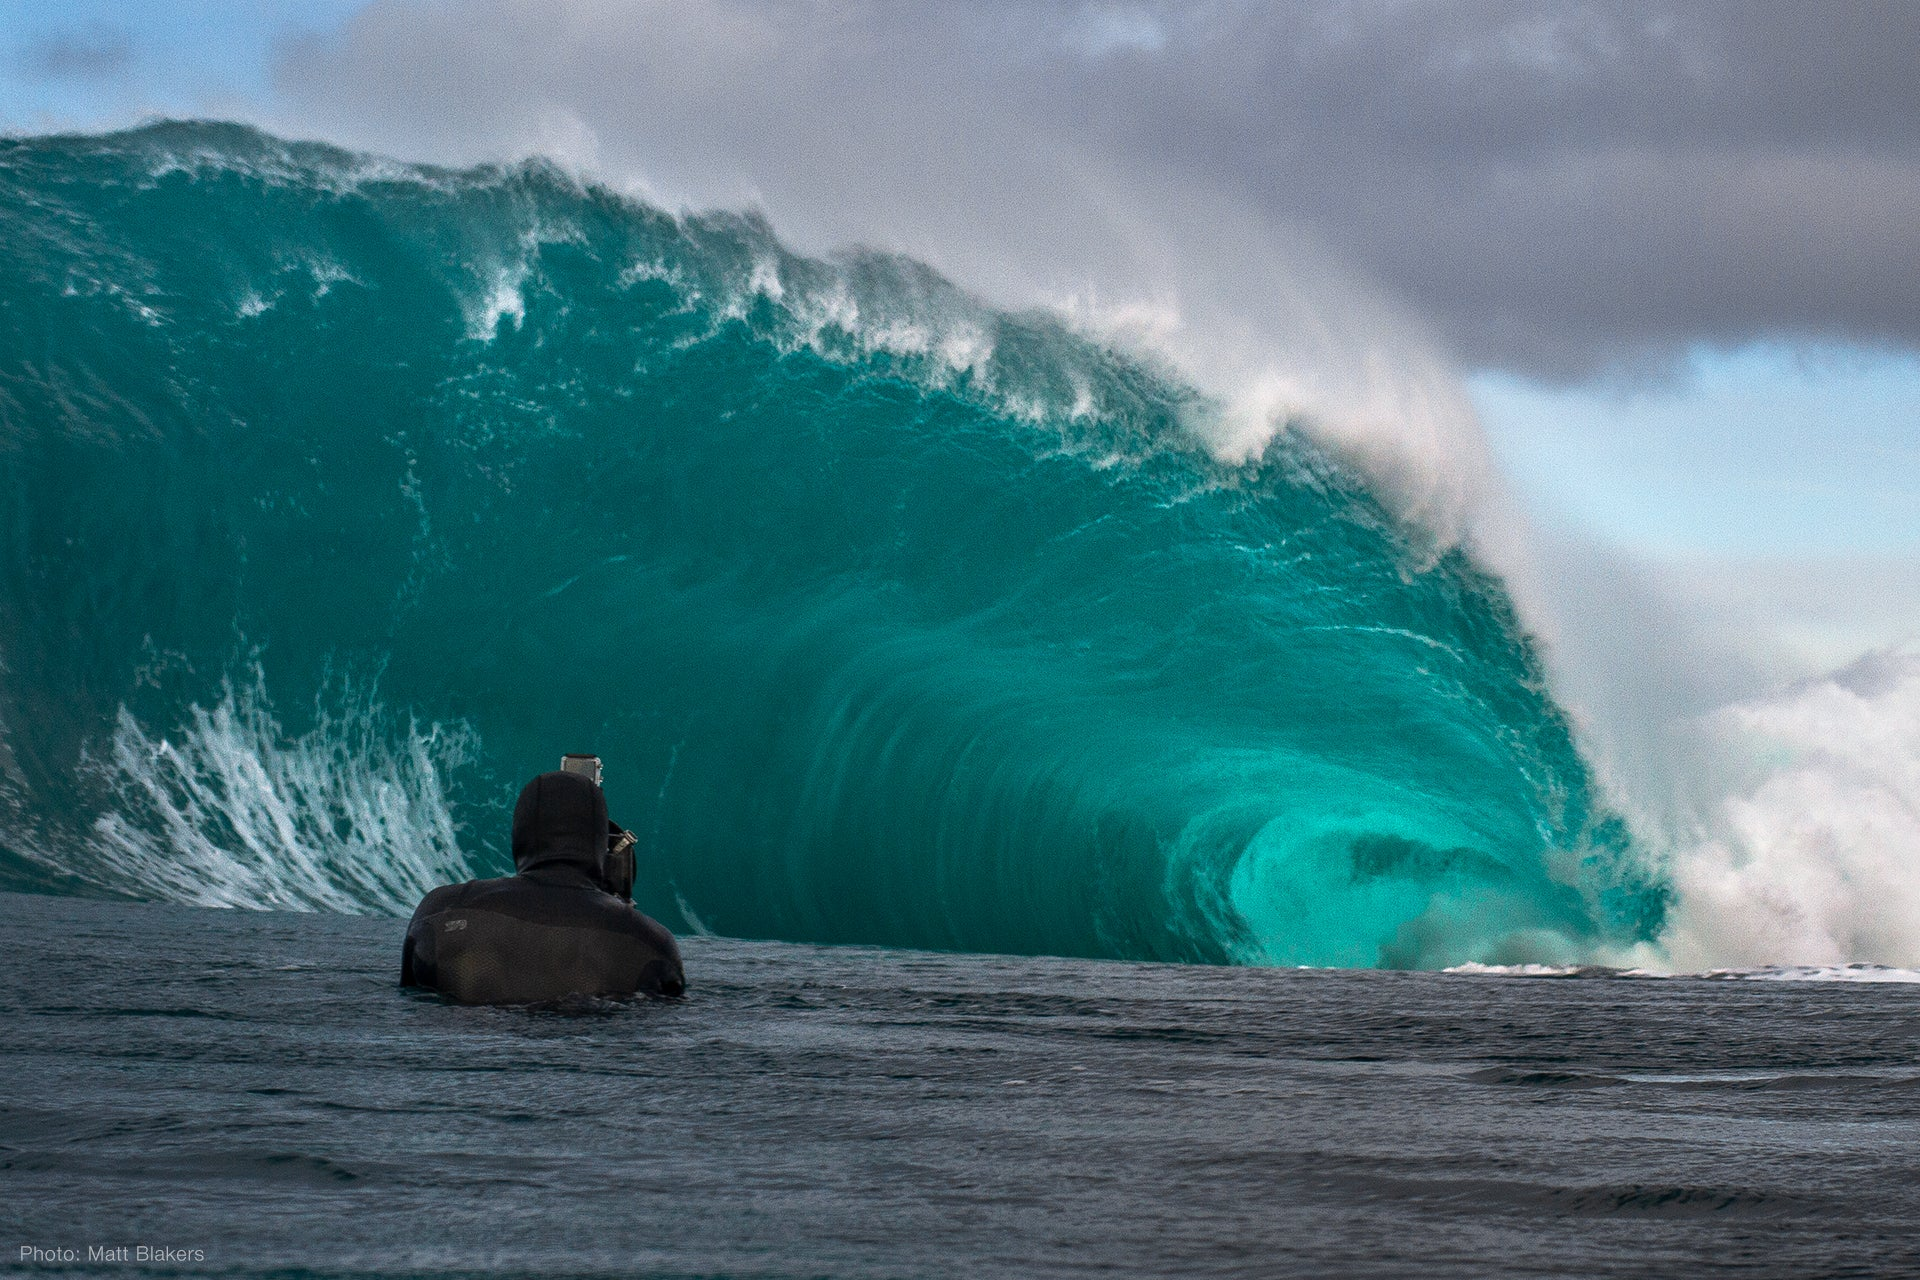 Phil Thurston Photographing in the ocean with Aquatech